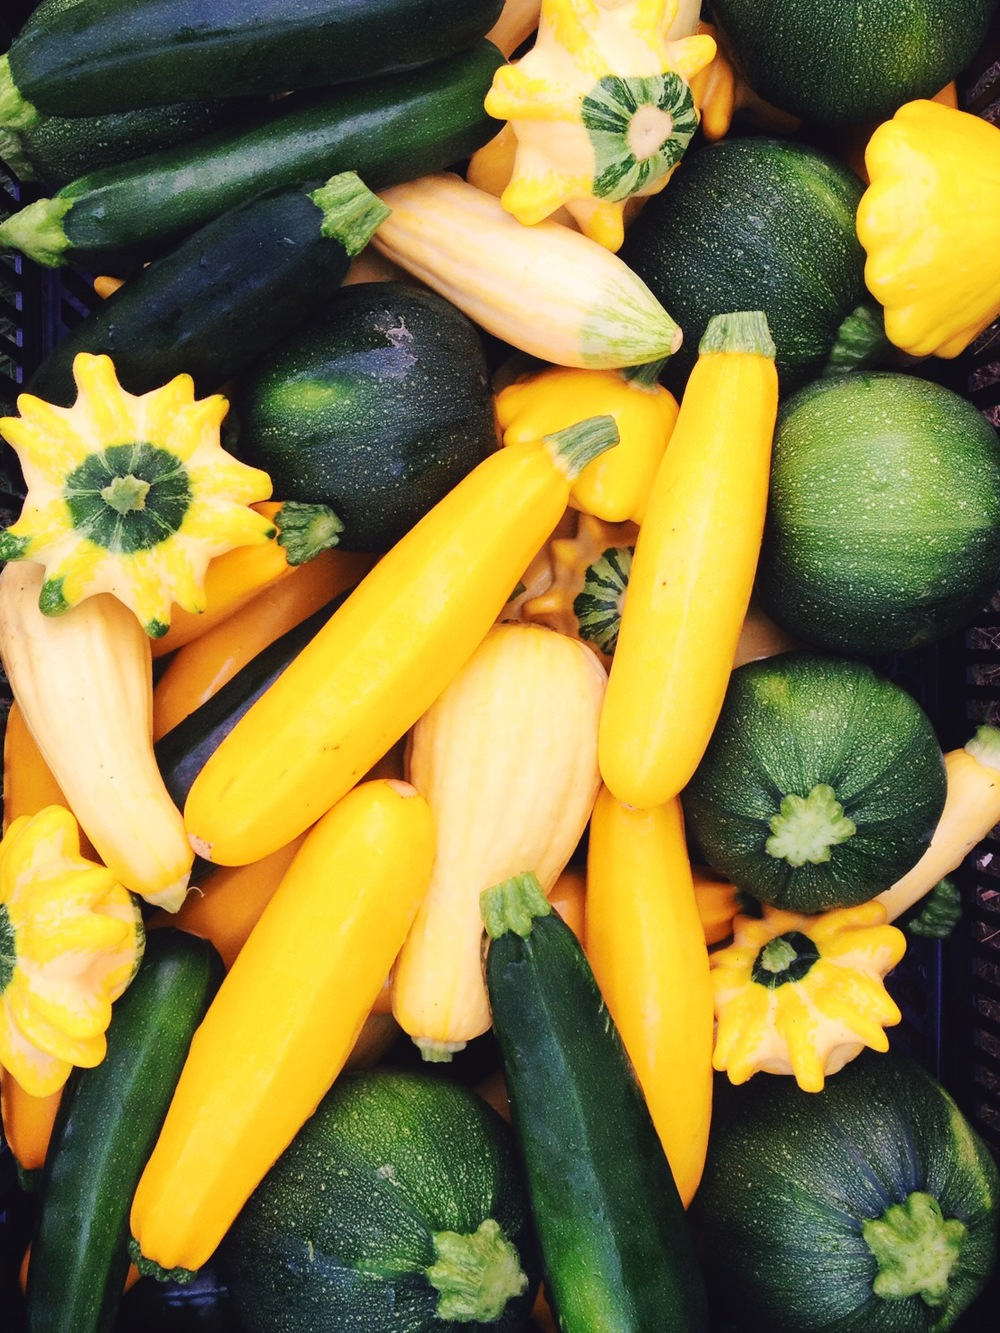 Summer squash has arrived! We planted 8 Balls, Flying Saucers, Saffrons, Zephyrs, and Patty Pans in addition to the standard zucchini and yellow squash because... they're awesome?